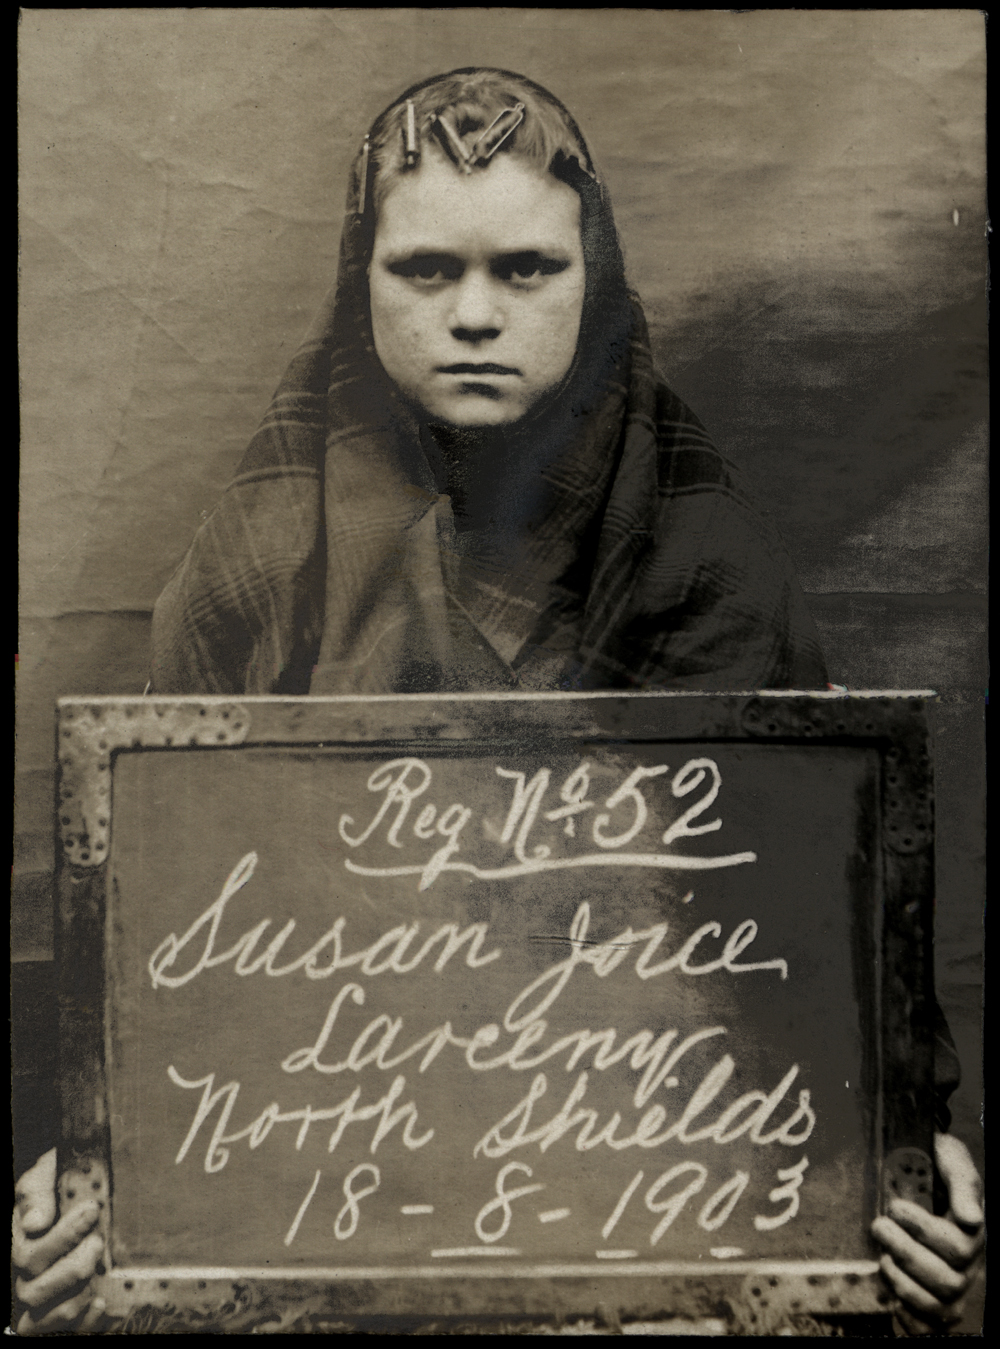 Susan Joice arrested for larceny  on 18th August 1903  arrested at North Shields Police Station. Photo via Tyne & Wear Archives & Museums.